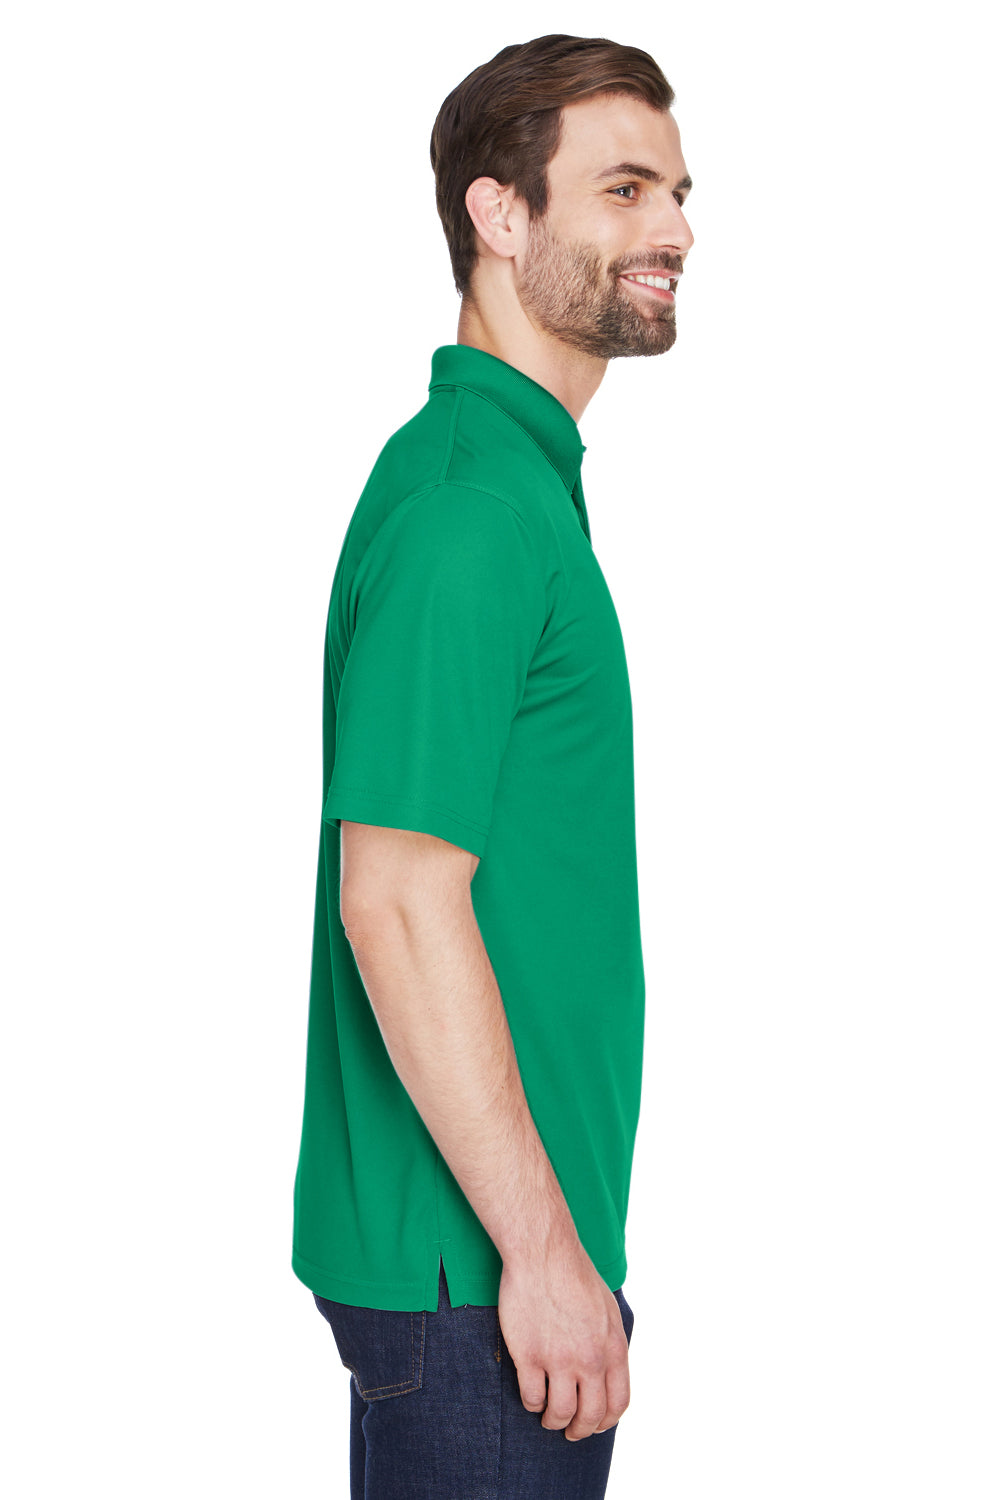 UltraClub 8210 Mens Cool & Dry Moisture Wicking Short Sleeve Polo Shirt Kelly Green Side